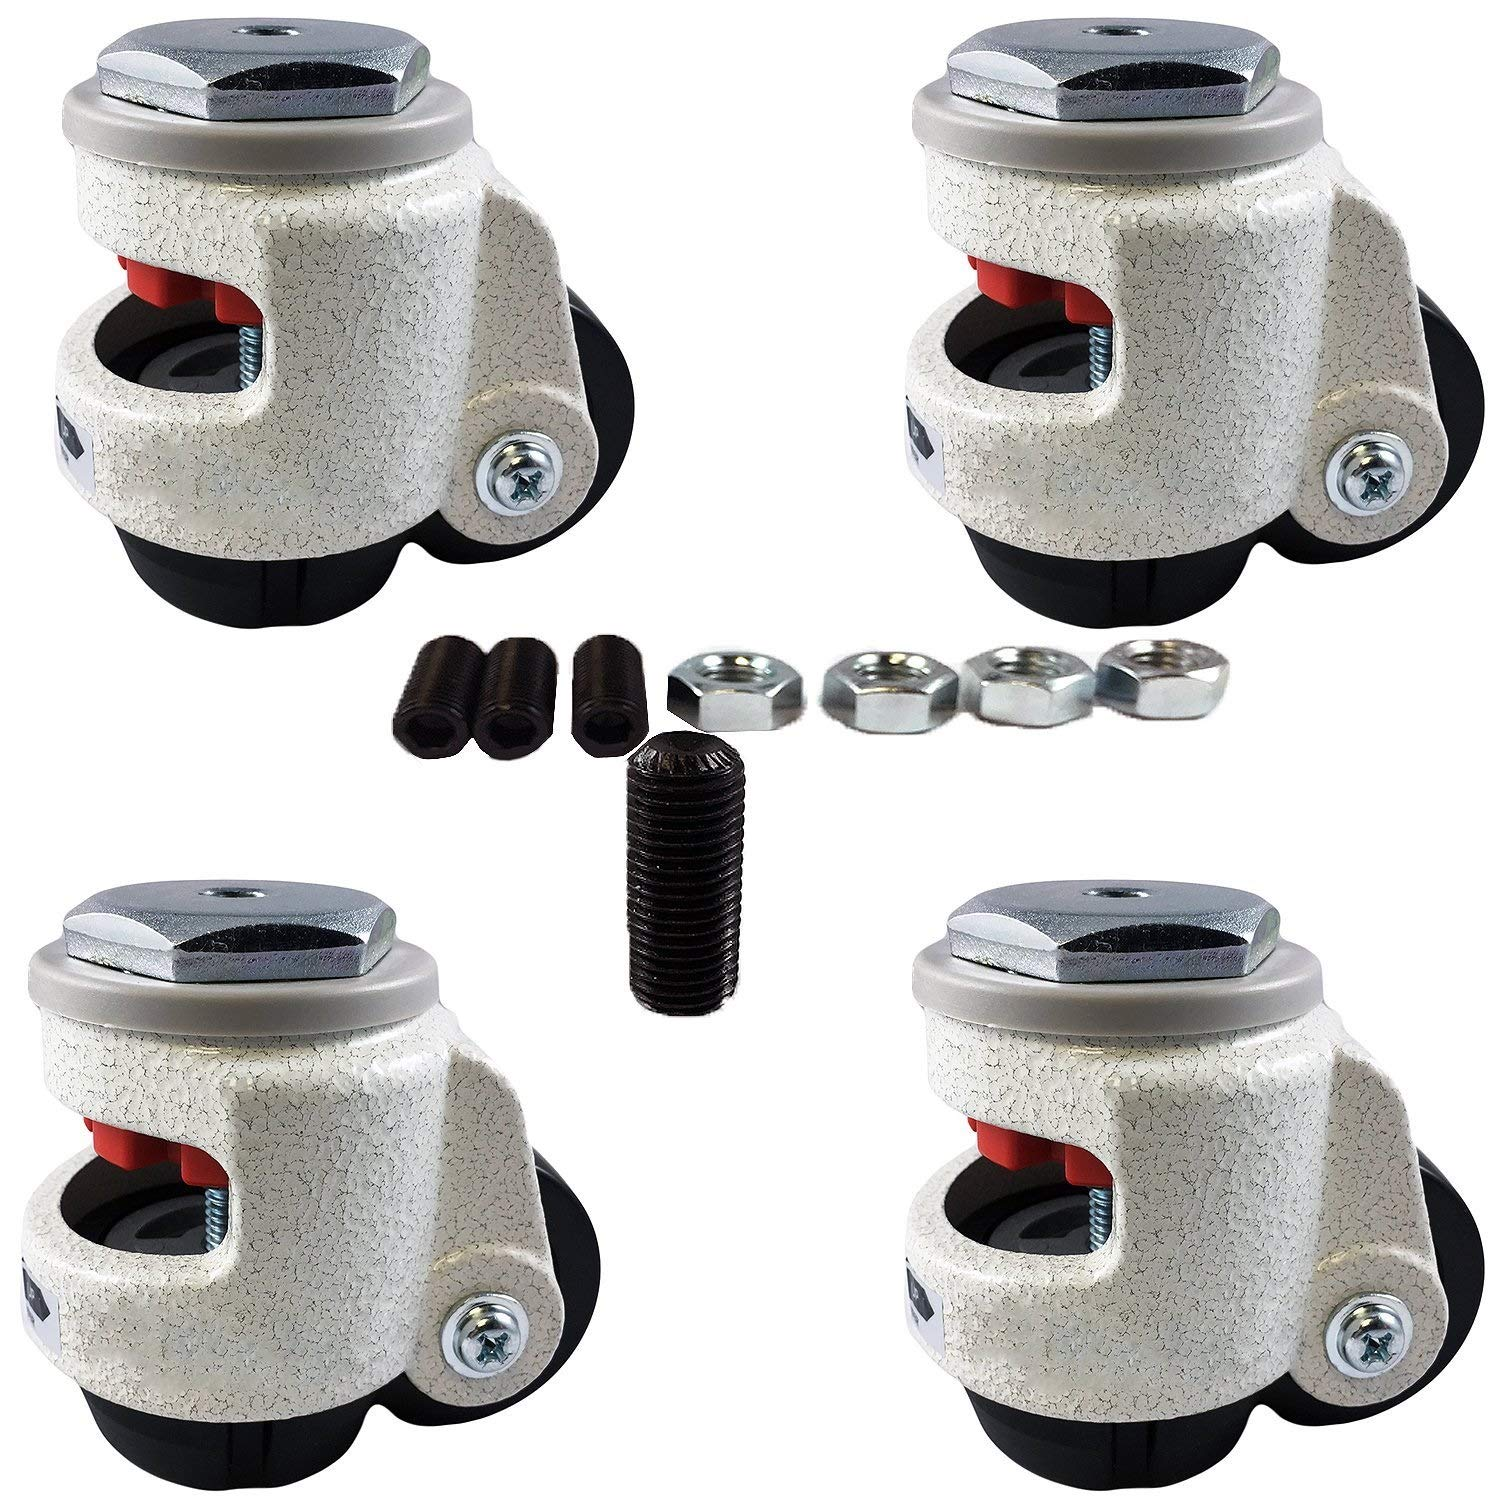 CasterHQ Wheel Master - Retractable Leveling Machine Stem Casters - 4 Pack - 2,400 lbs Per Set - Threaded Stem Version - 12MM Bolts/Hardware Included by CasterHQ